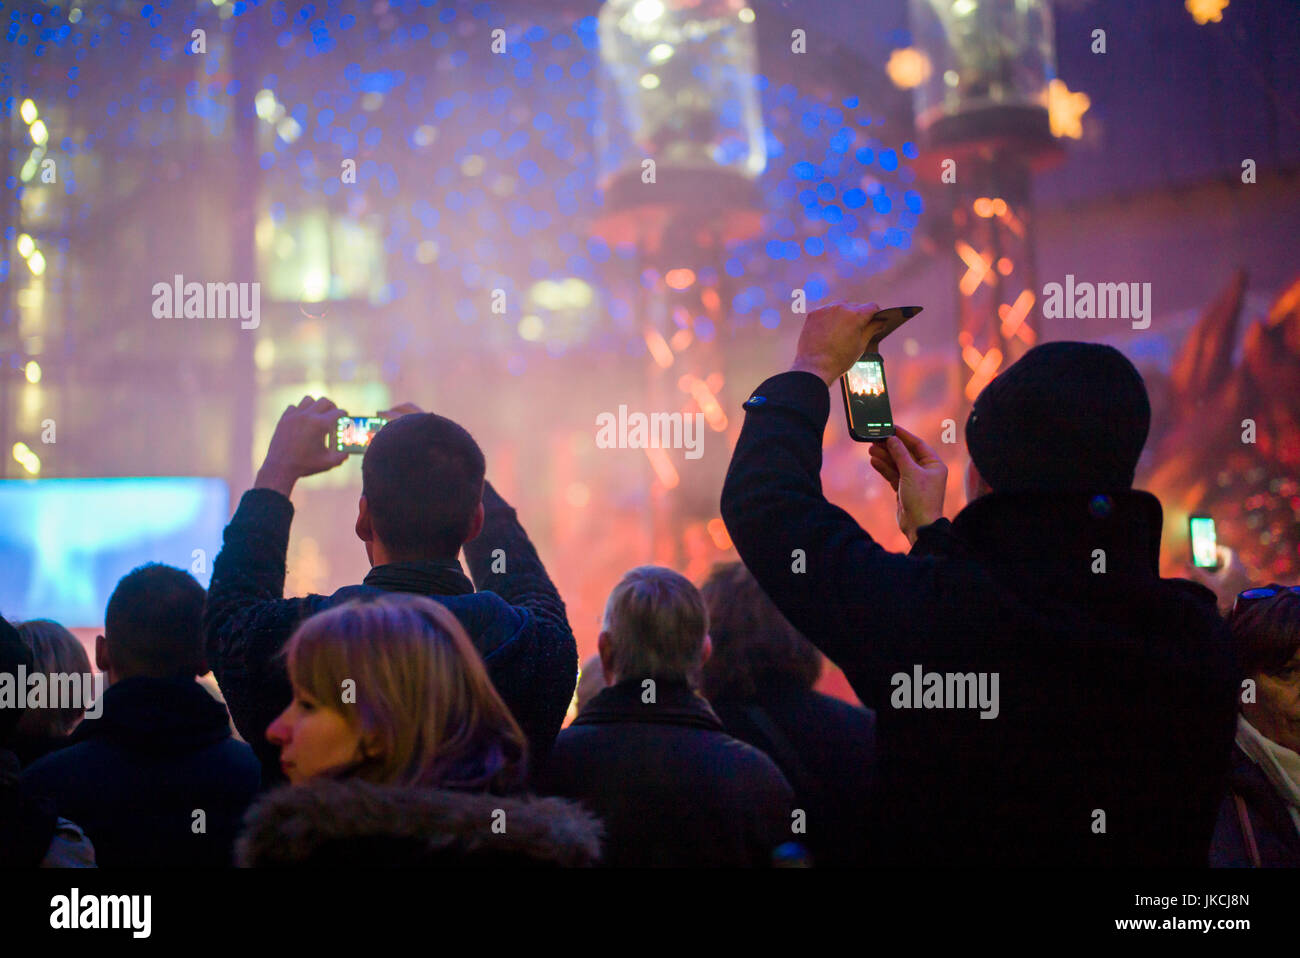 Germany, Berlin, Mitte, Potsdamer Platz, interior of the Sony Center, people using cell phones at indoor performance - Stock Image